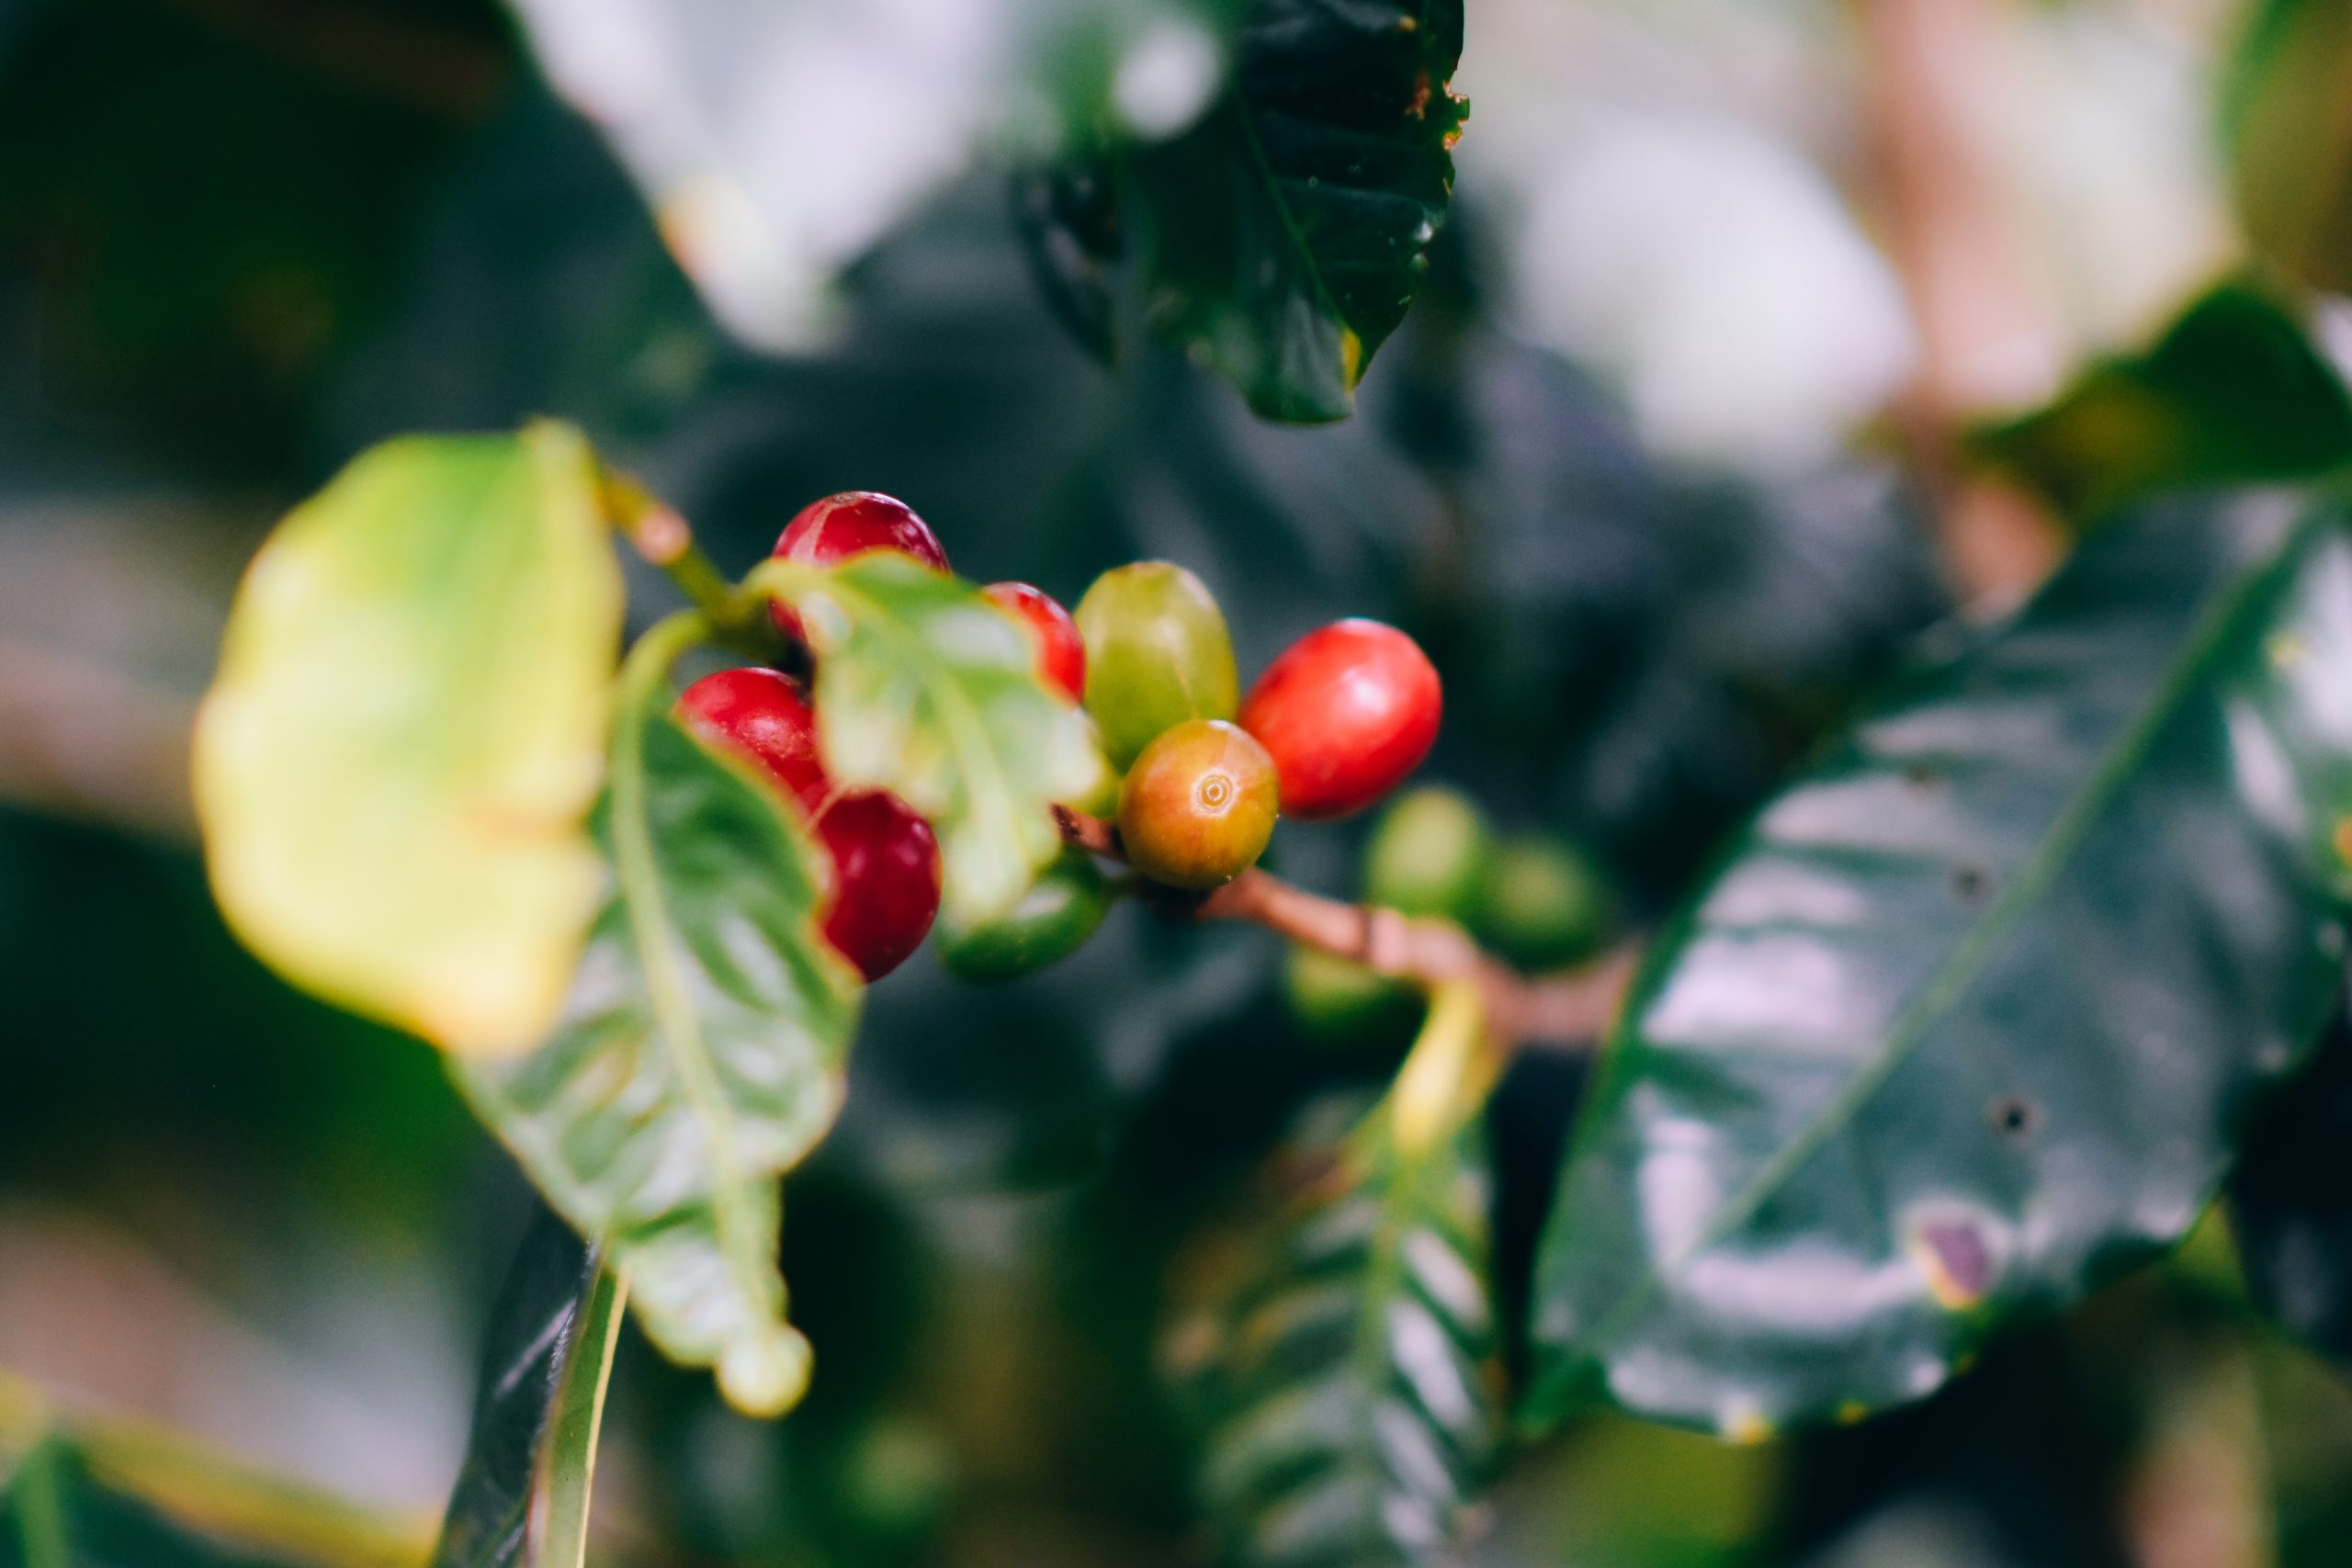 coffee cherries growing on a coffee plant